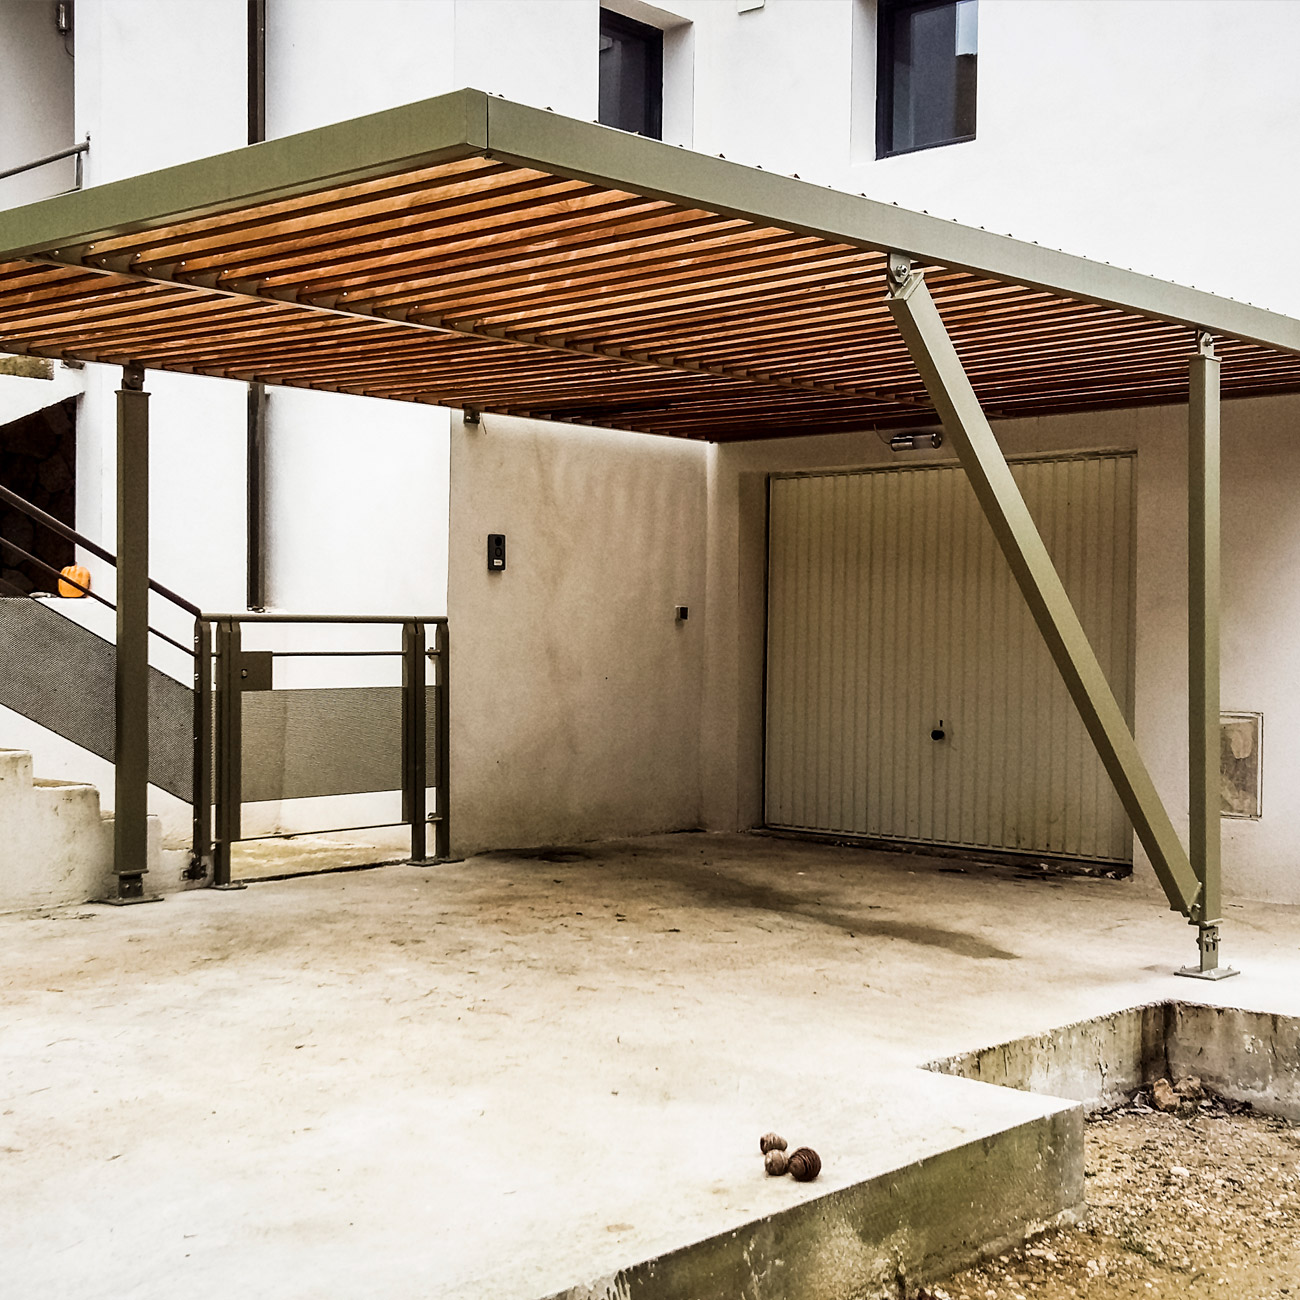 MetalRine_Fiche_Realisation_Hero_image_Carport_Portillon